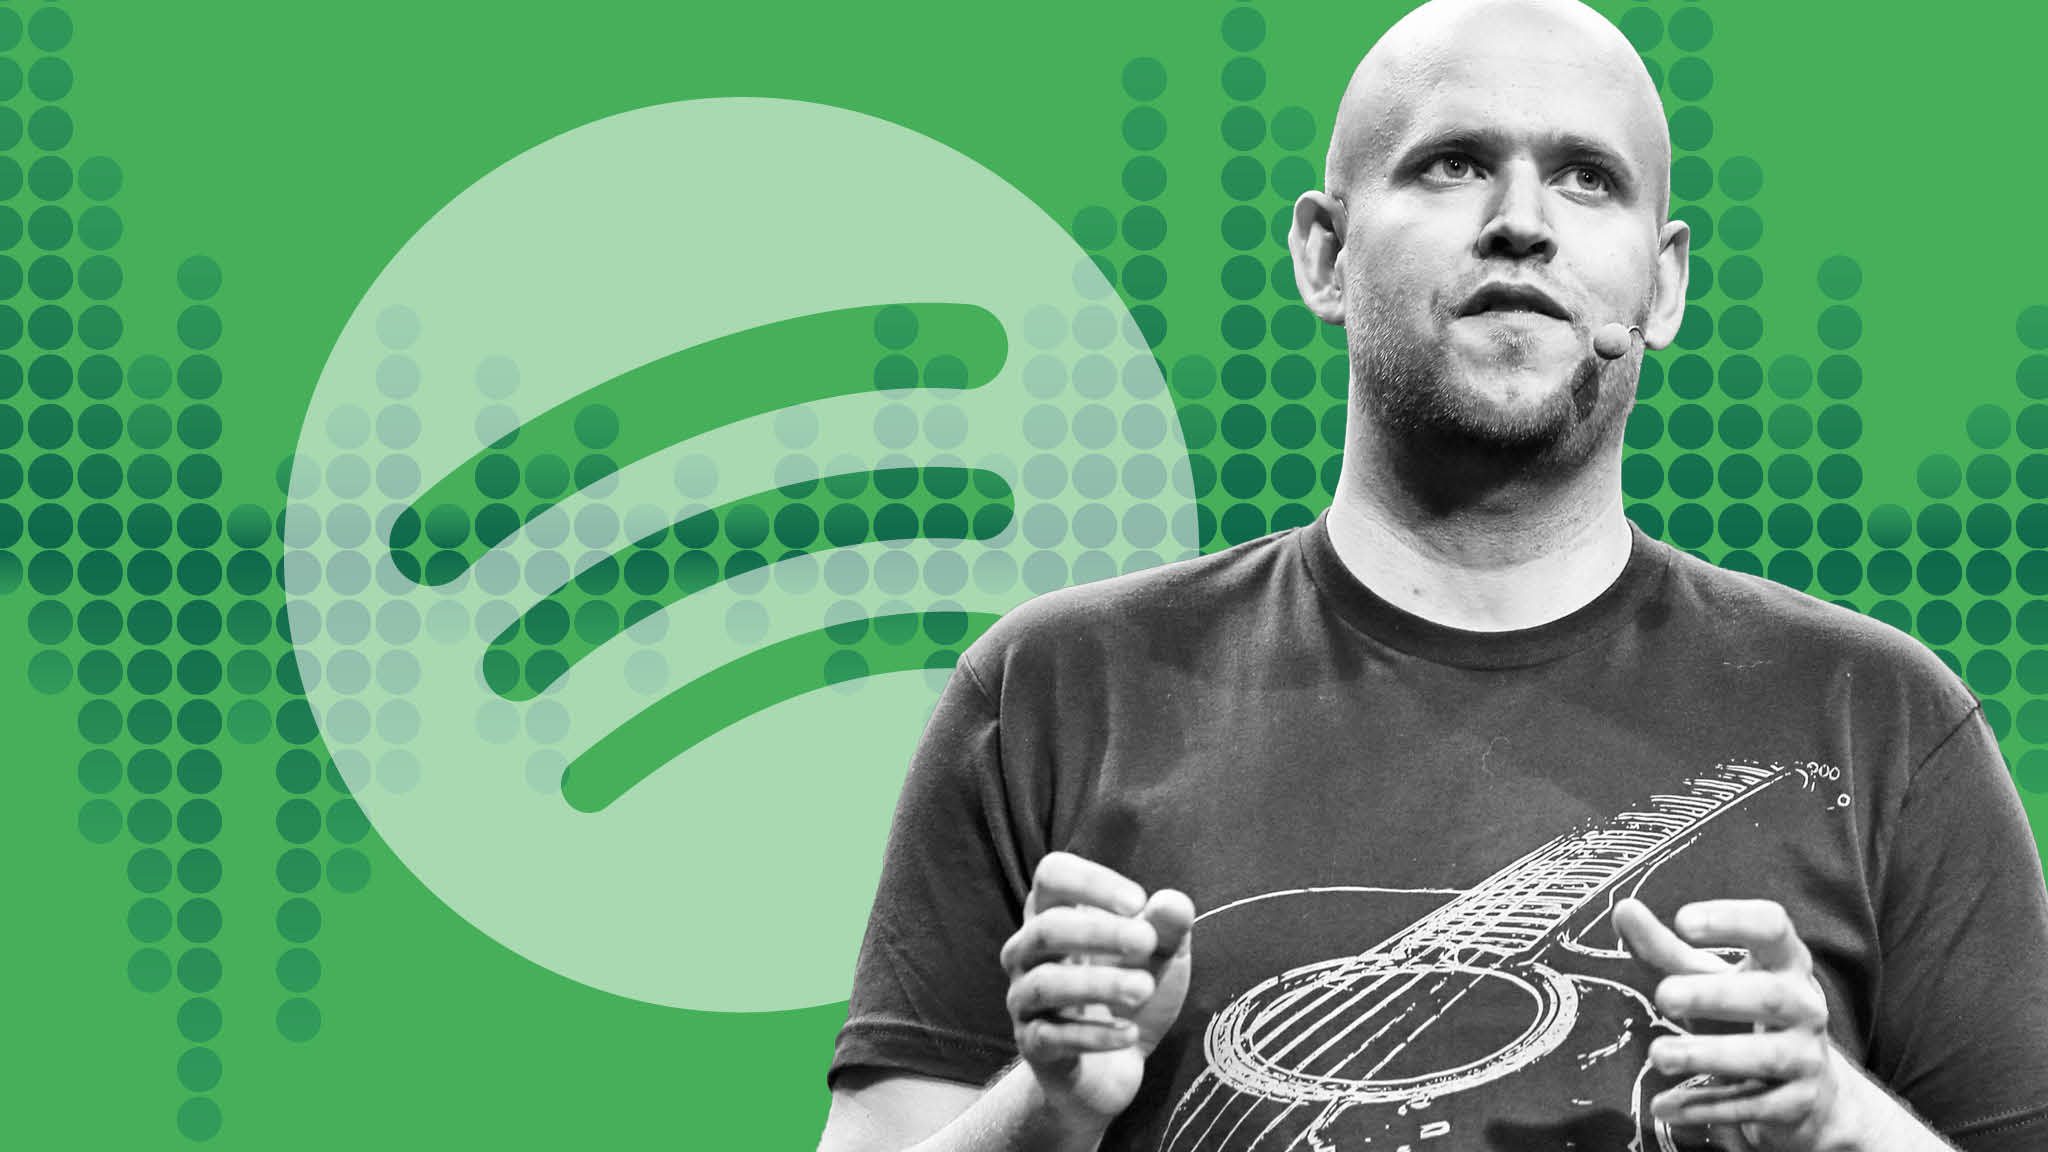 Why Spotify is risking an unconventional IPO